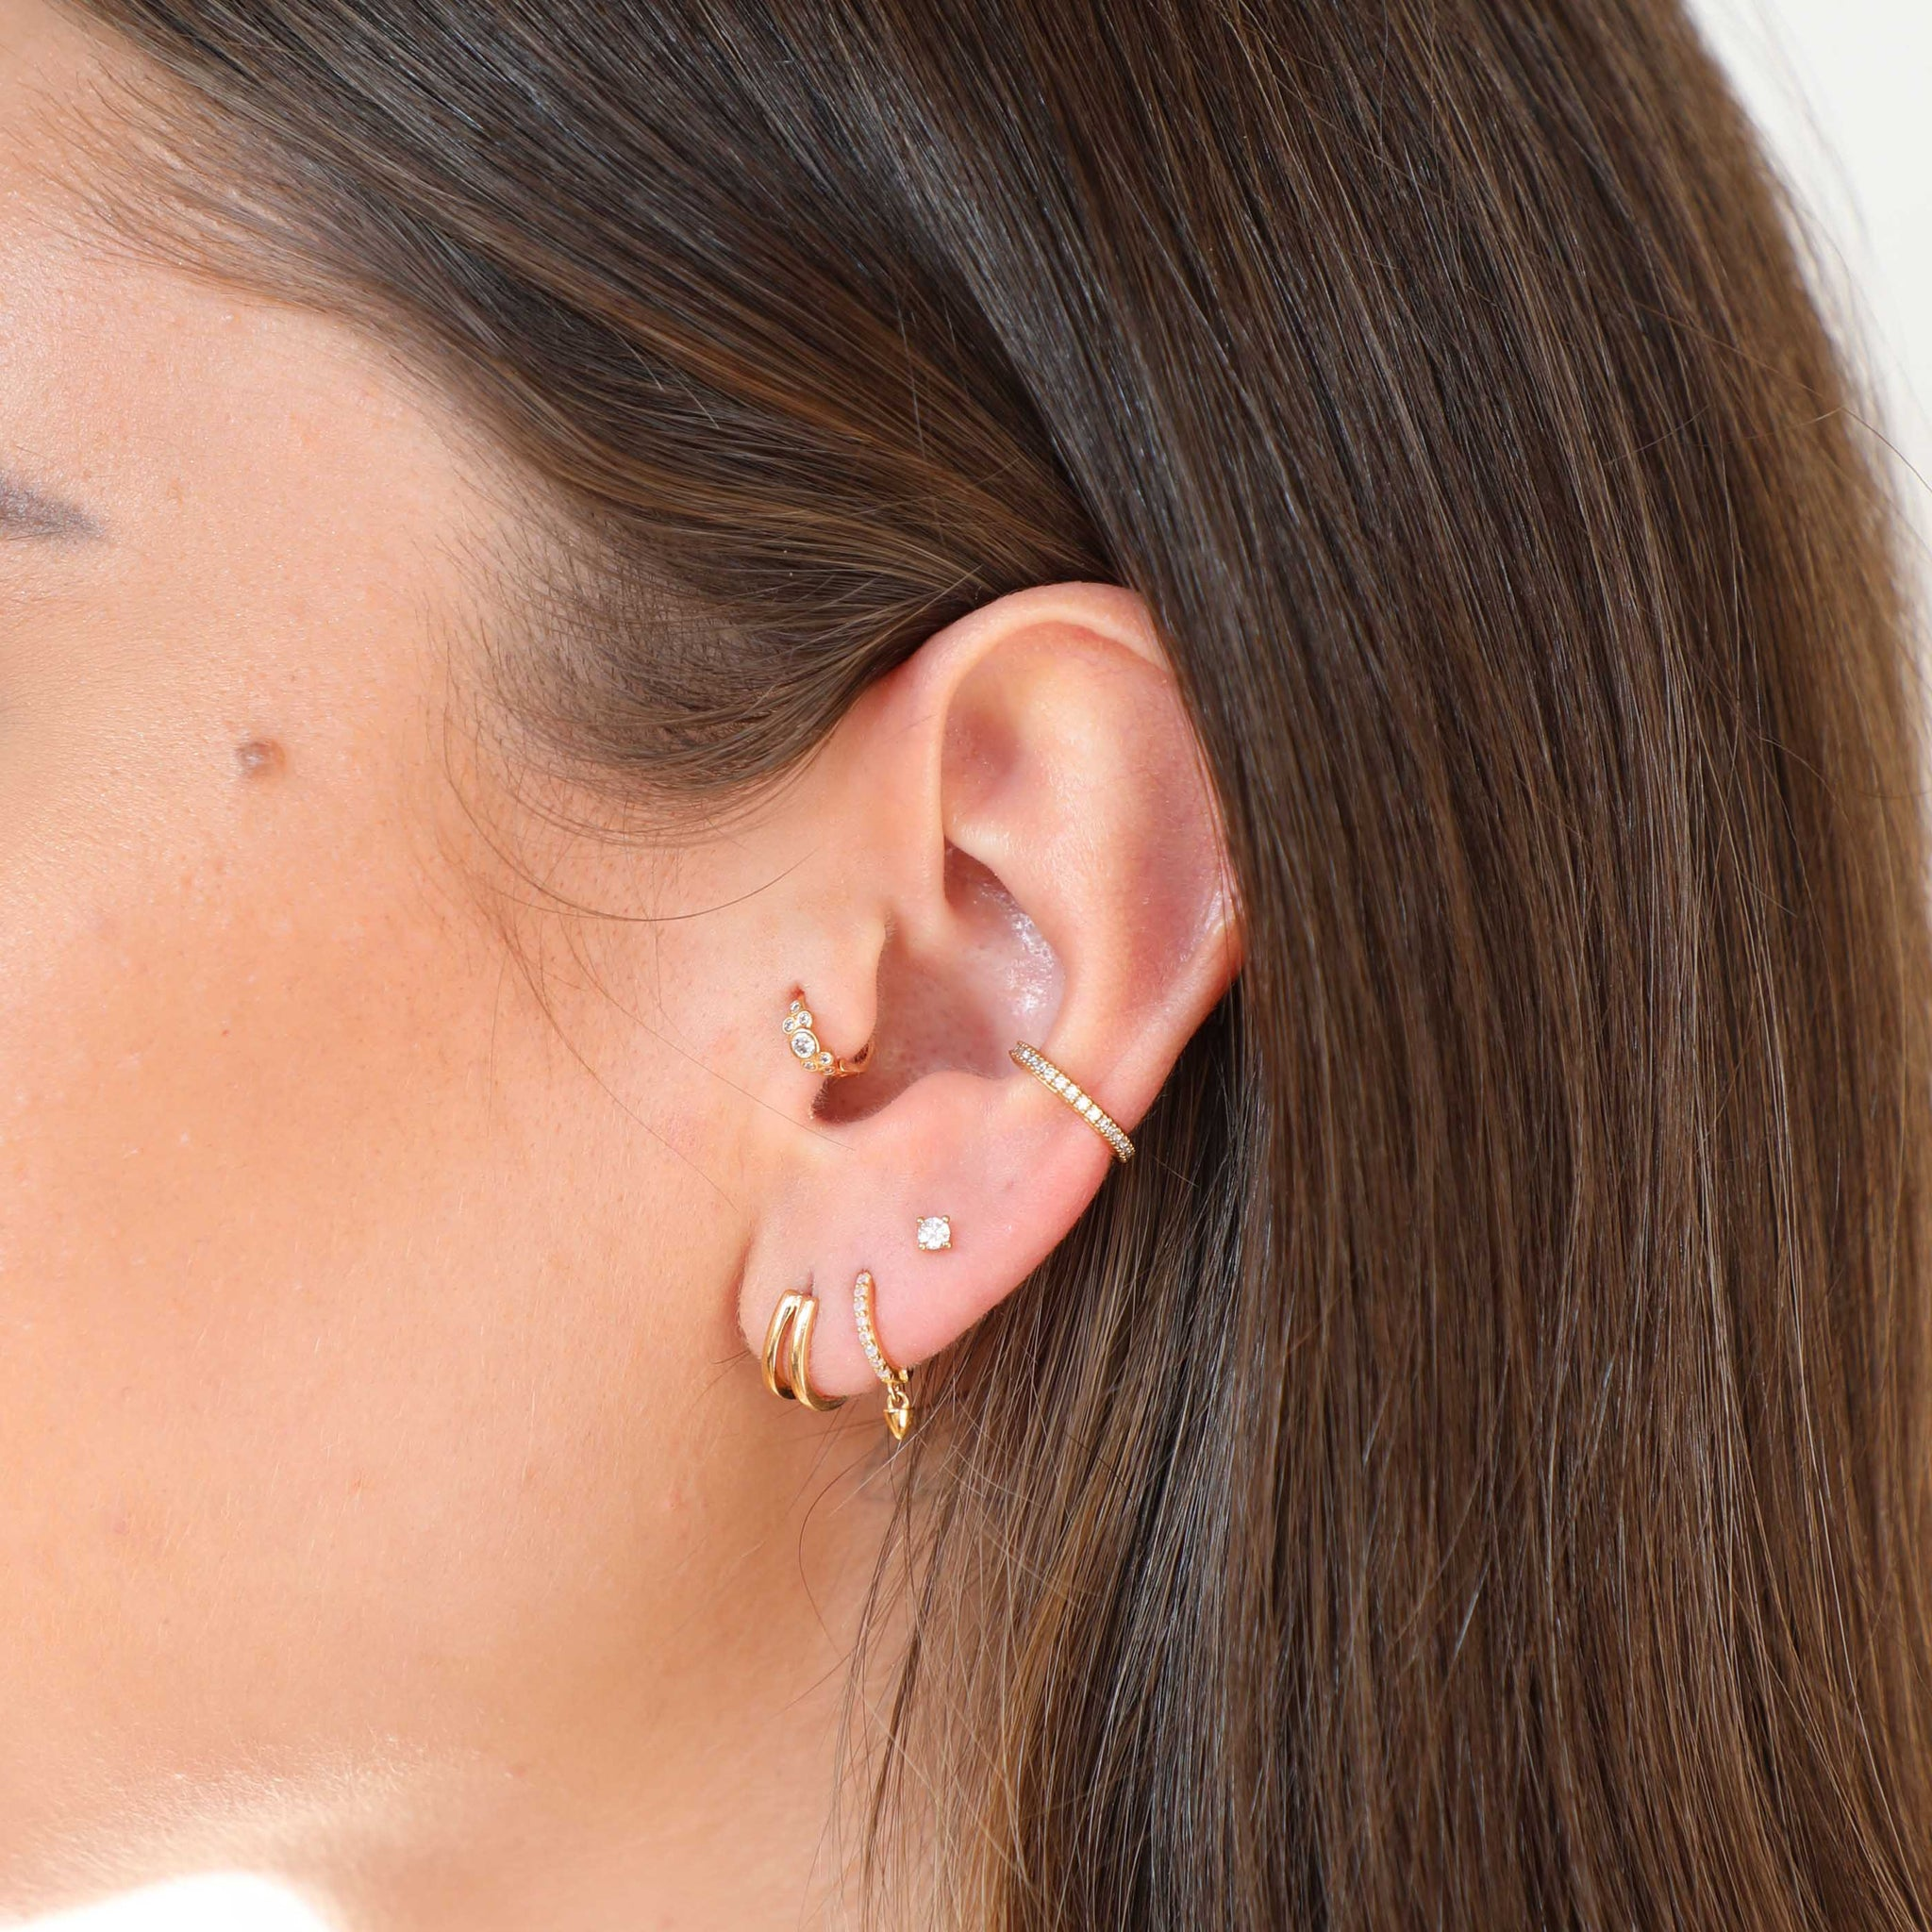 Crystal Ear Cuff in Gold